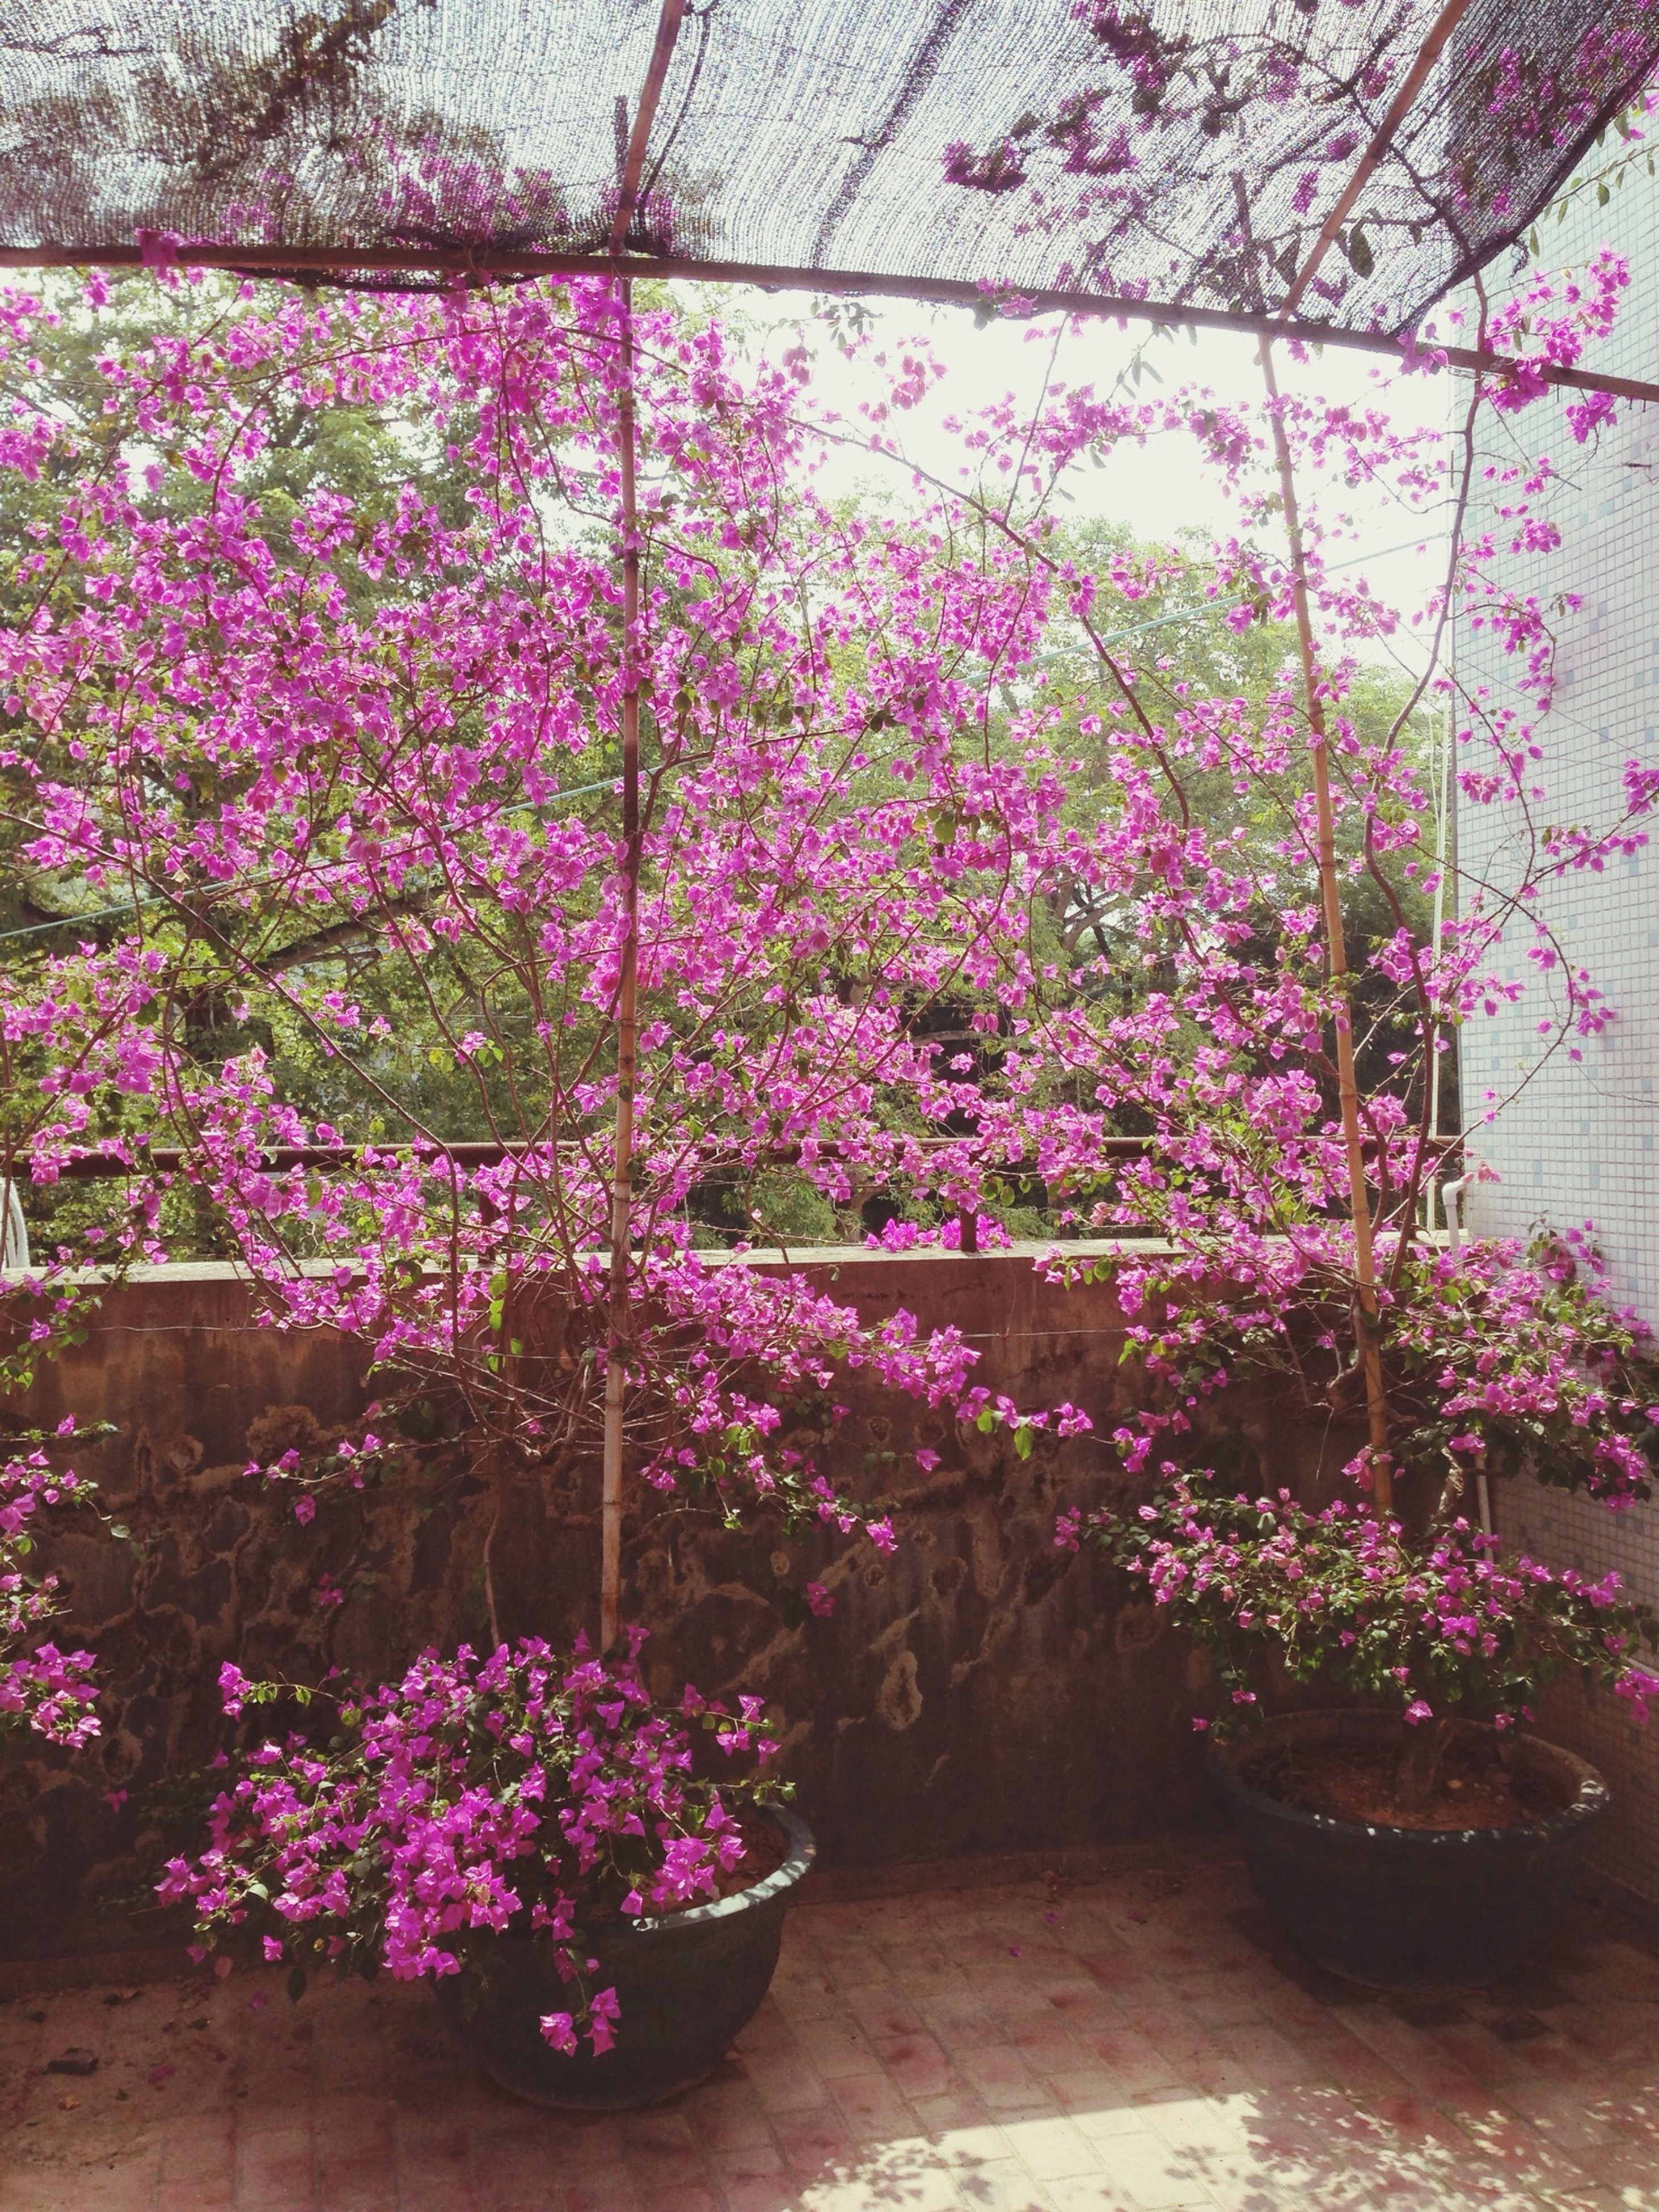 flower, freshness, growth, fragility, plant, beauty in nature, pink color, nature, blooming, petal, in bloom, blossom, purple, tree, abundance, day, outdoors, springtime, no people, potted plant